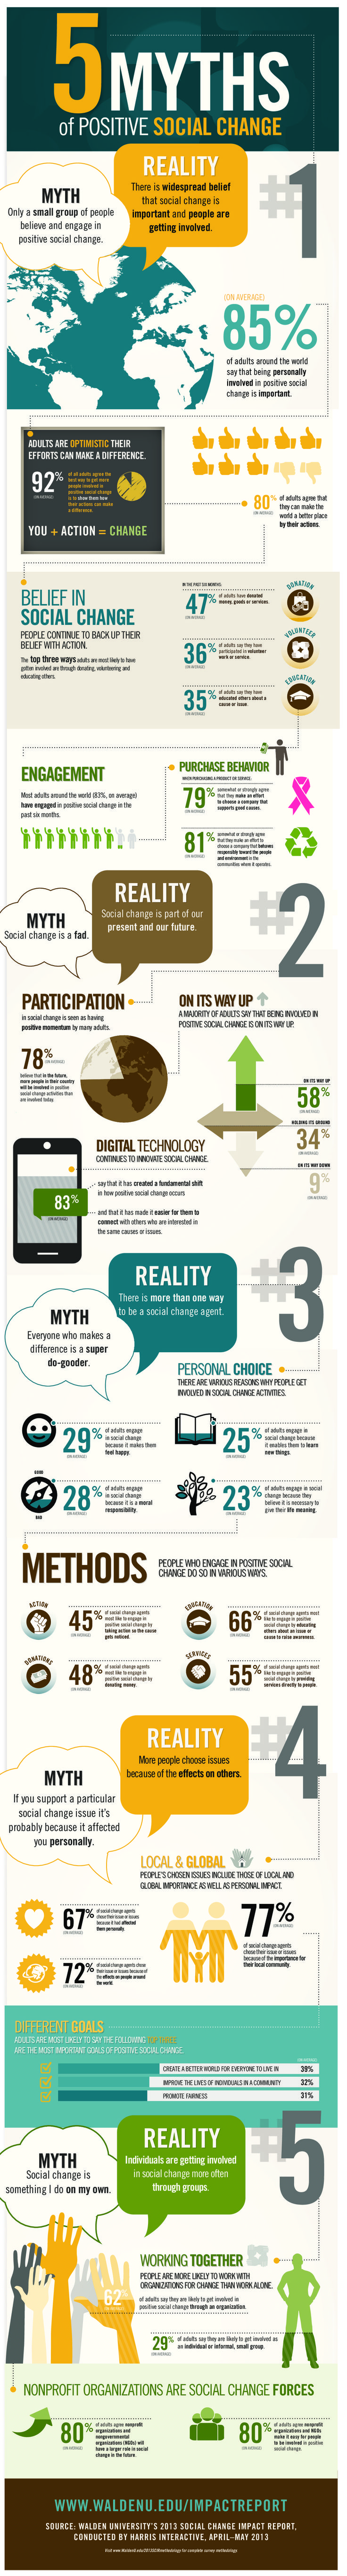 5 Myths Of Positive Social Change   #Infographic #Social #Change #Myths